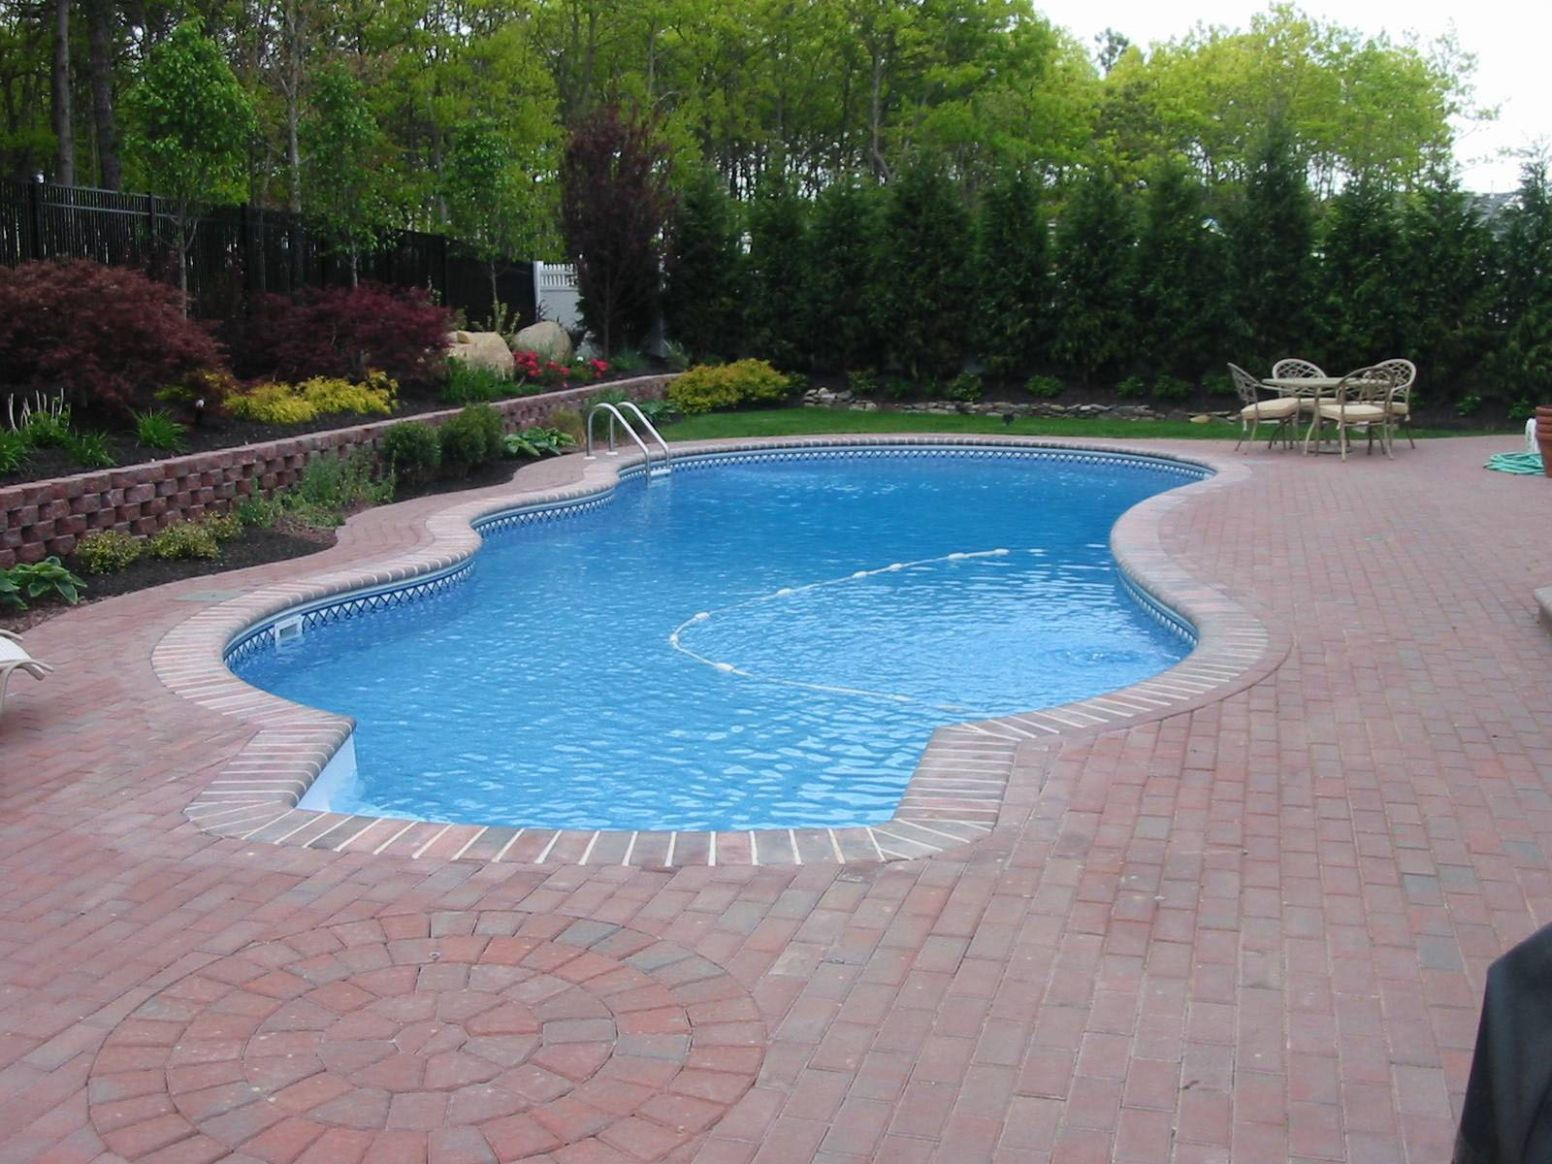 Poolside Water Features - Rock Water Slides - Waterfalls - Grottos ..